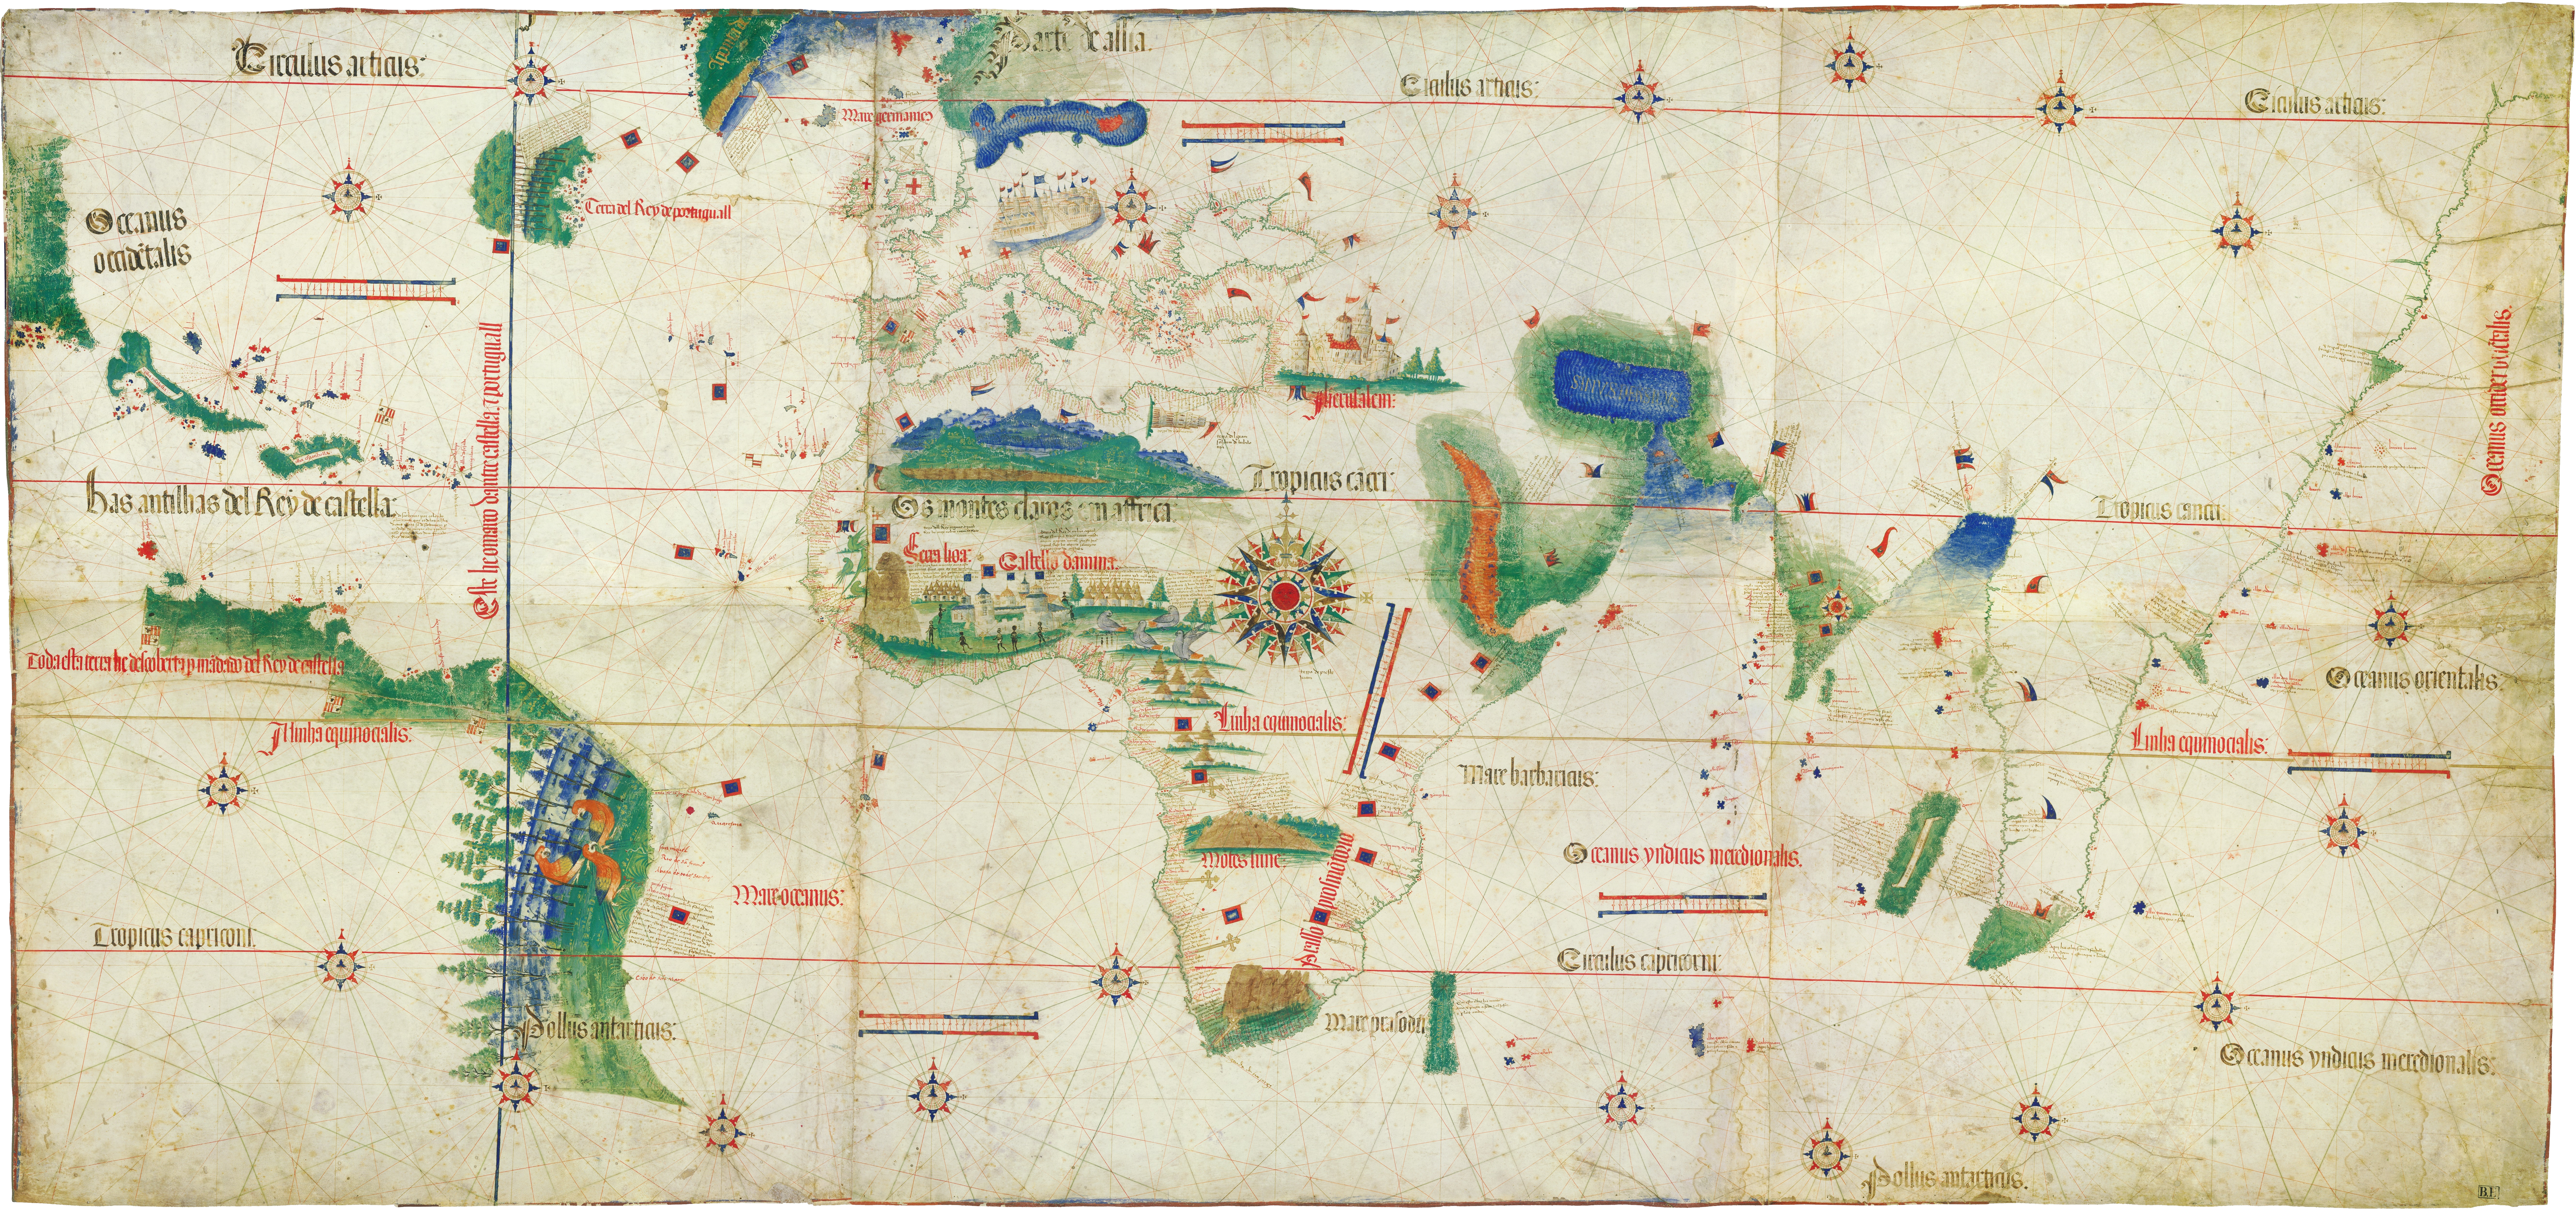 a history of christianity in the new world during the age of discovery Anglicanism spread to the new world and became popular throughout colonial  america during the early colonial period in virginia it was the official religion.